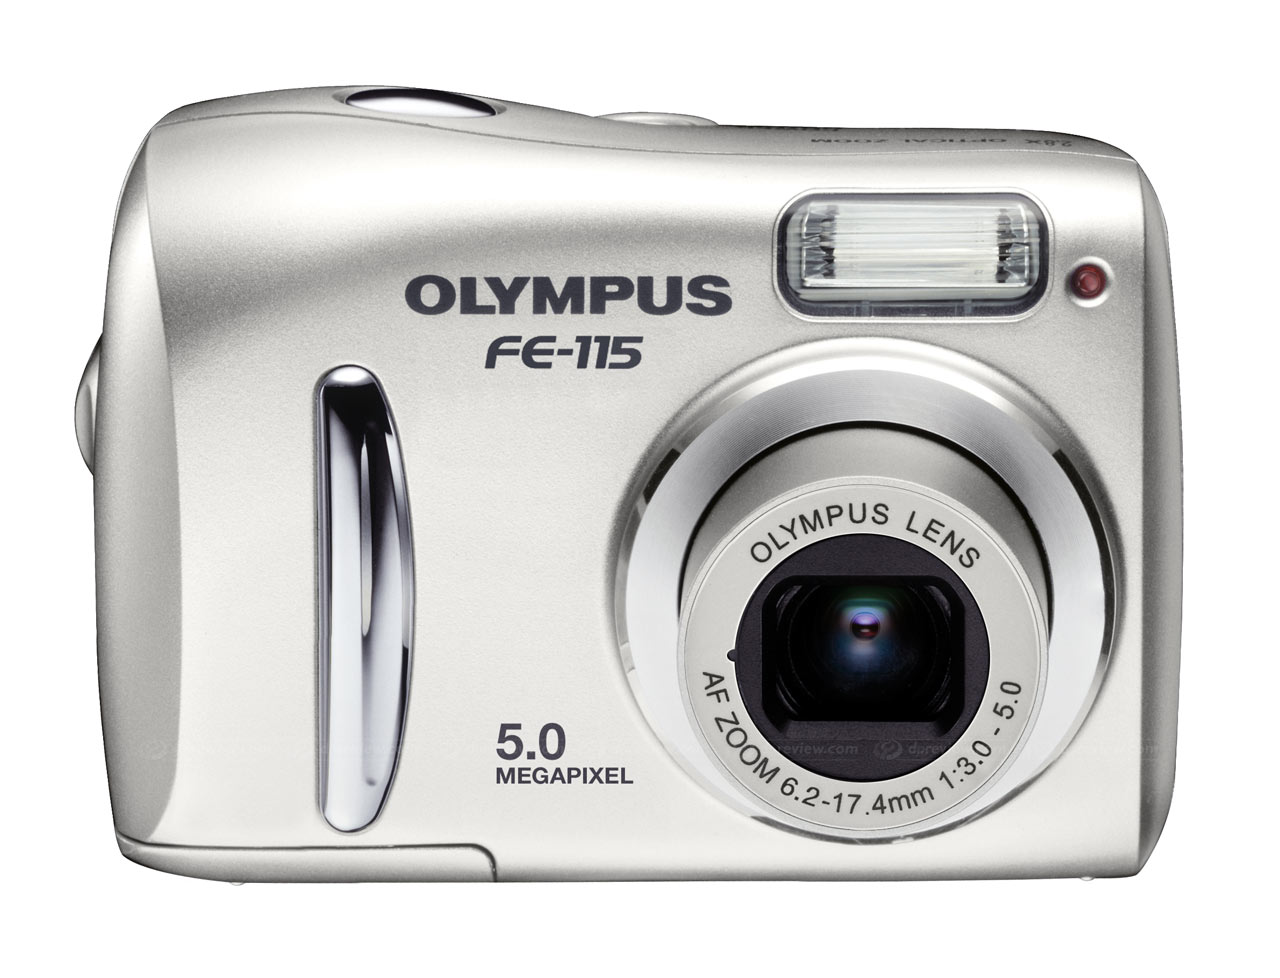 Olympus Digital Camera 5 The Olympus FE-115, an easy introduction to digital photography